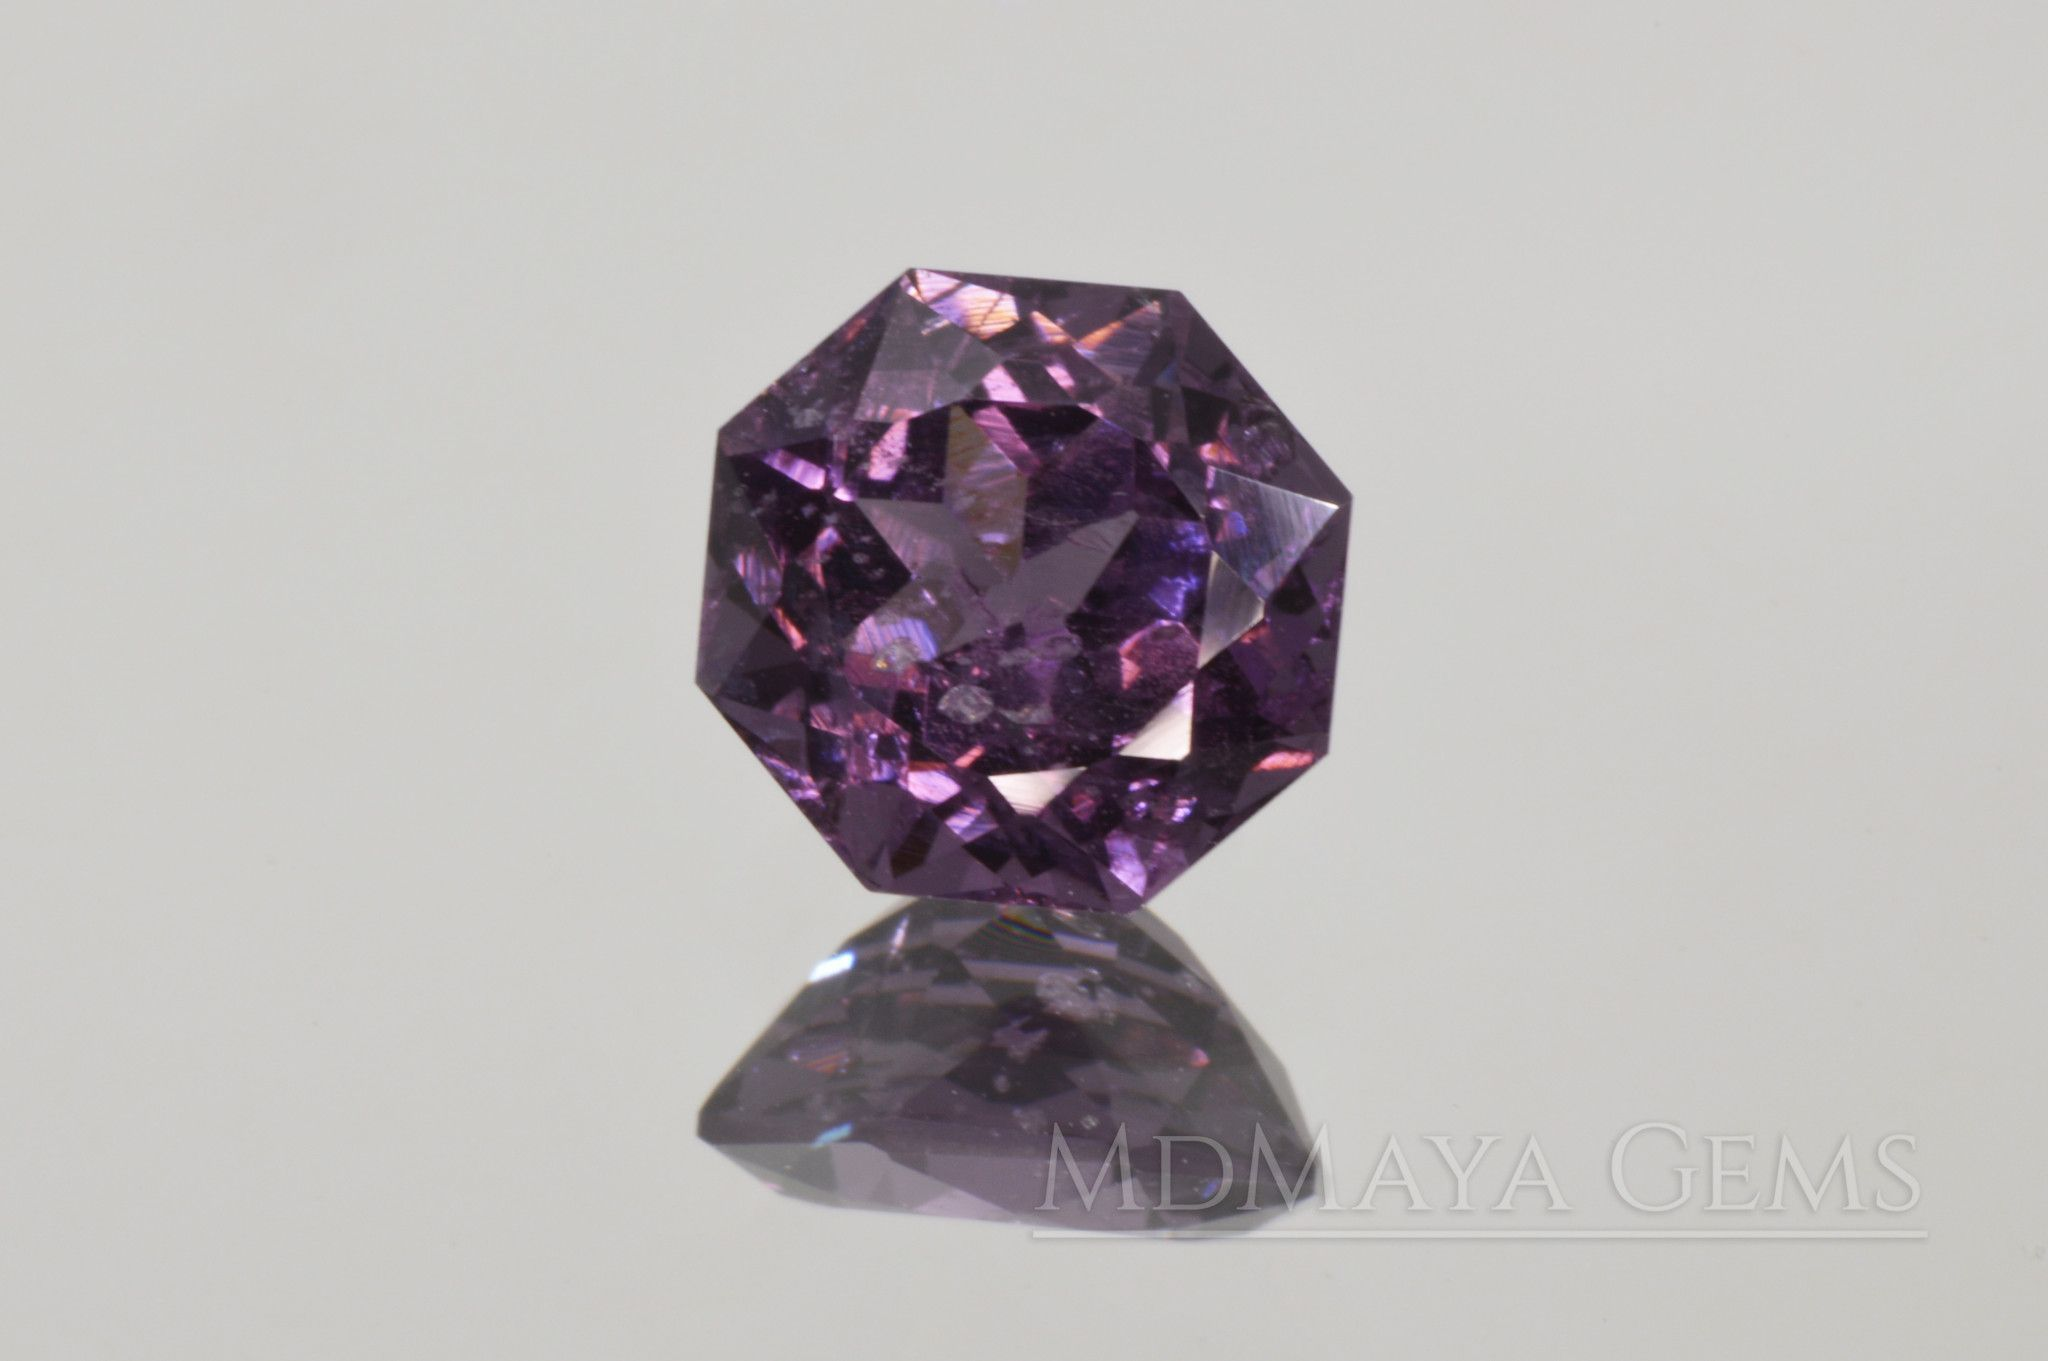 derby to slices thin inc online tourmaline rim its blog ks similar gemstone a in namesake purple outer and jewelers called one is green with combination cut watermelon pink center color